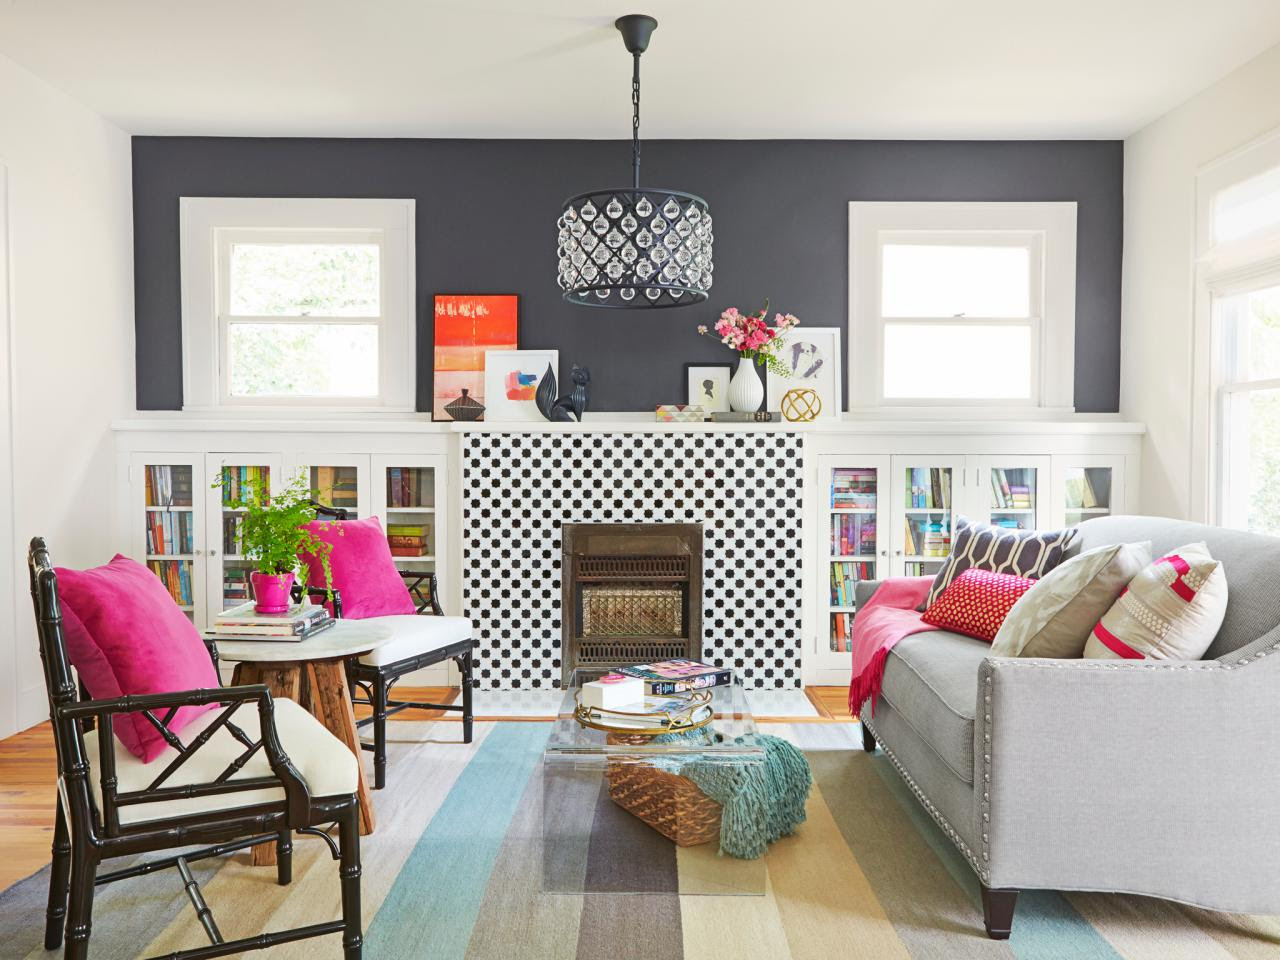 7 Low-Budget Living Room Updates | HGTV's Decorating